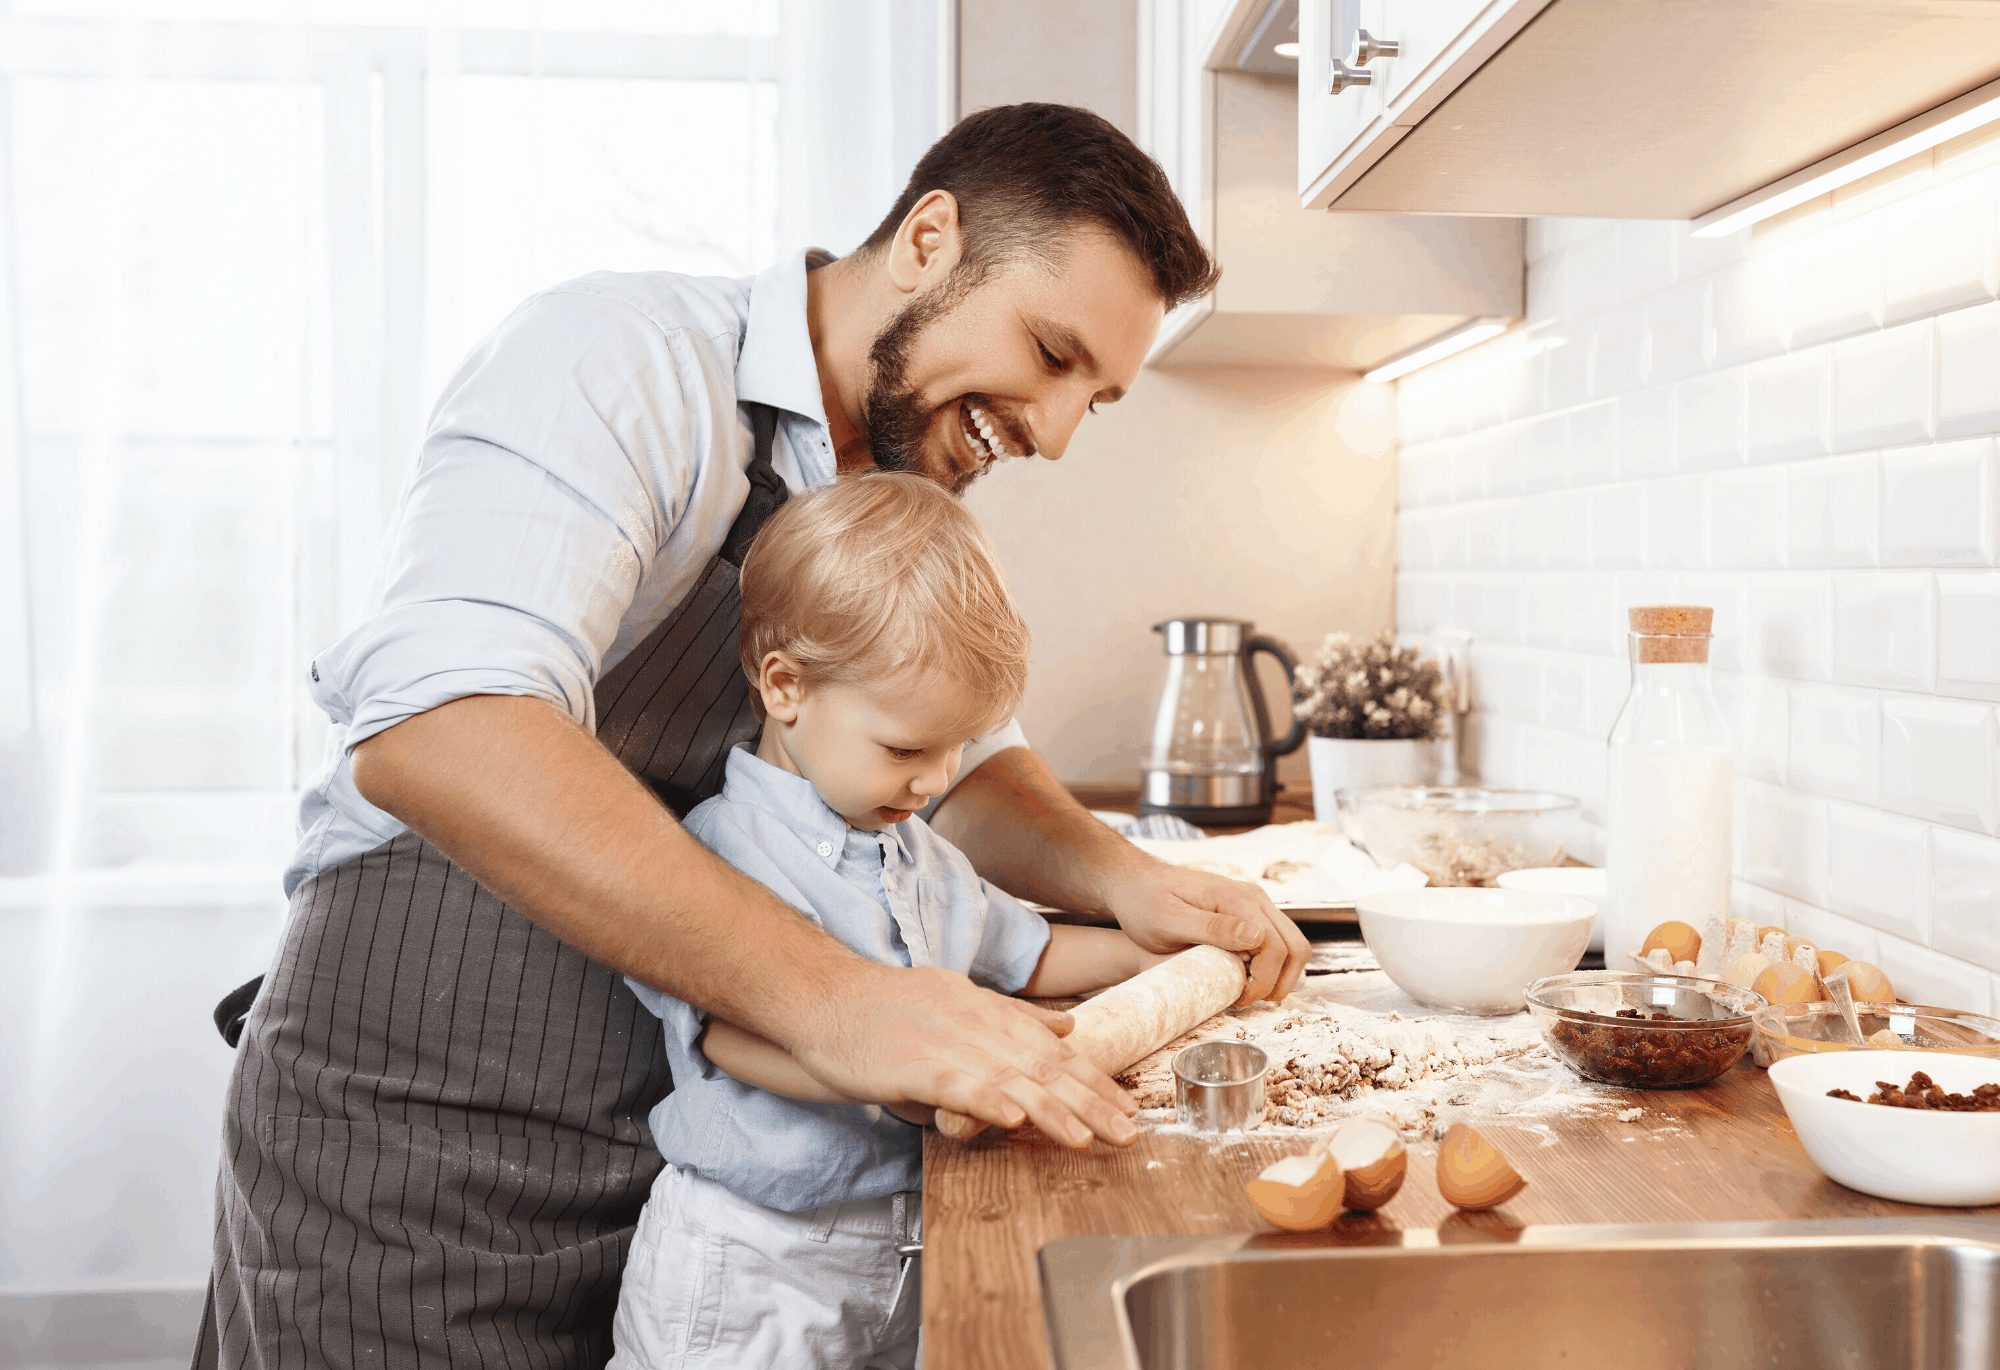 Man and son in kitchen